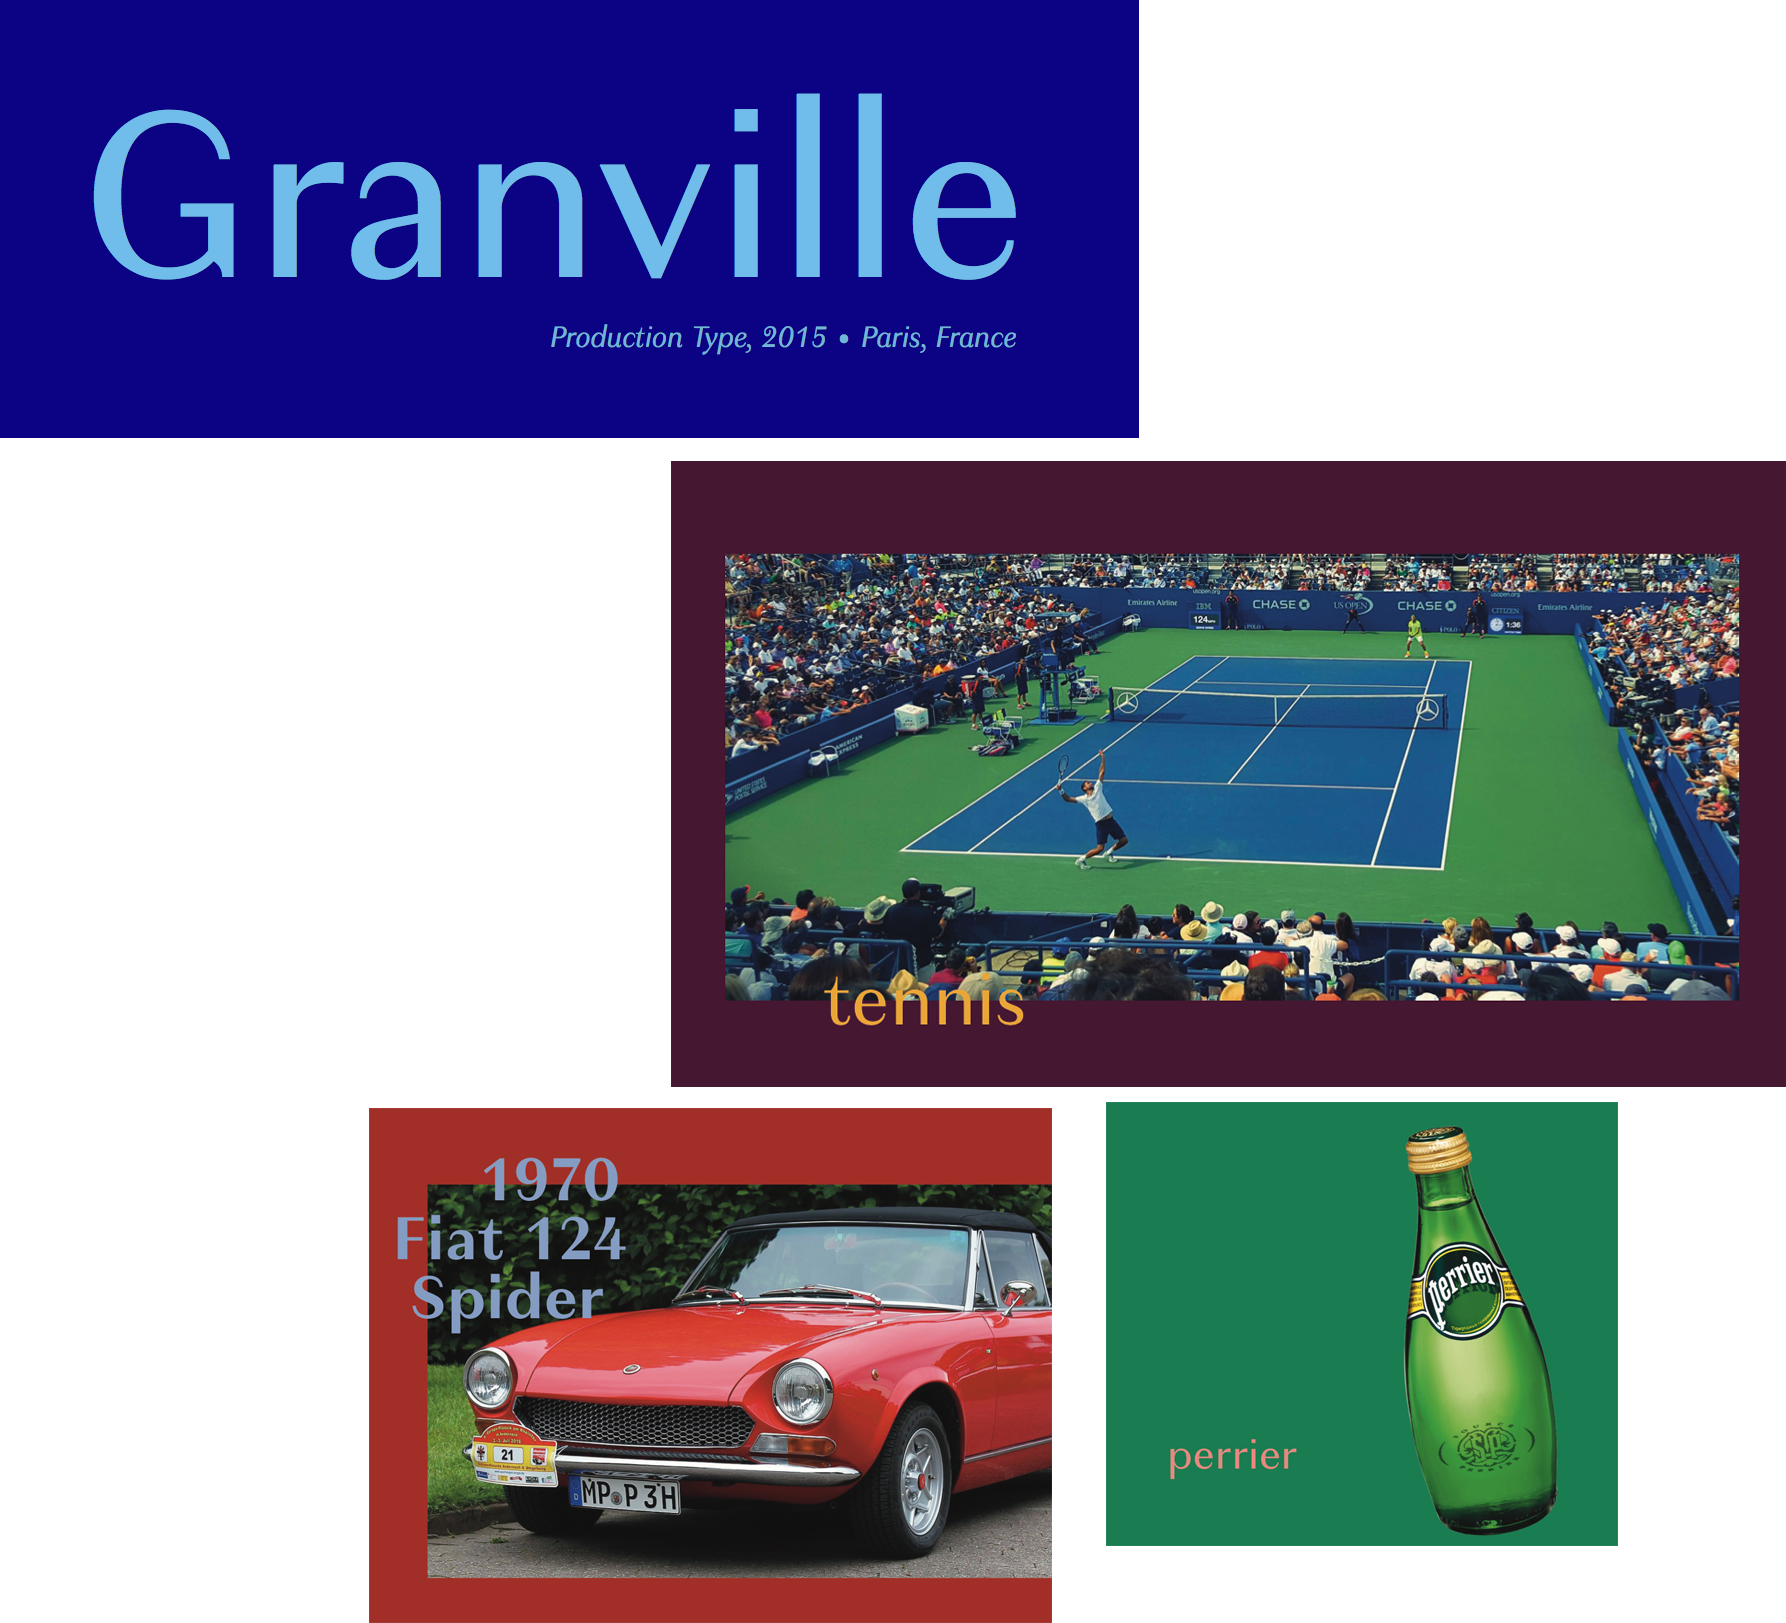 granville_research.png